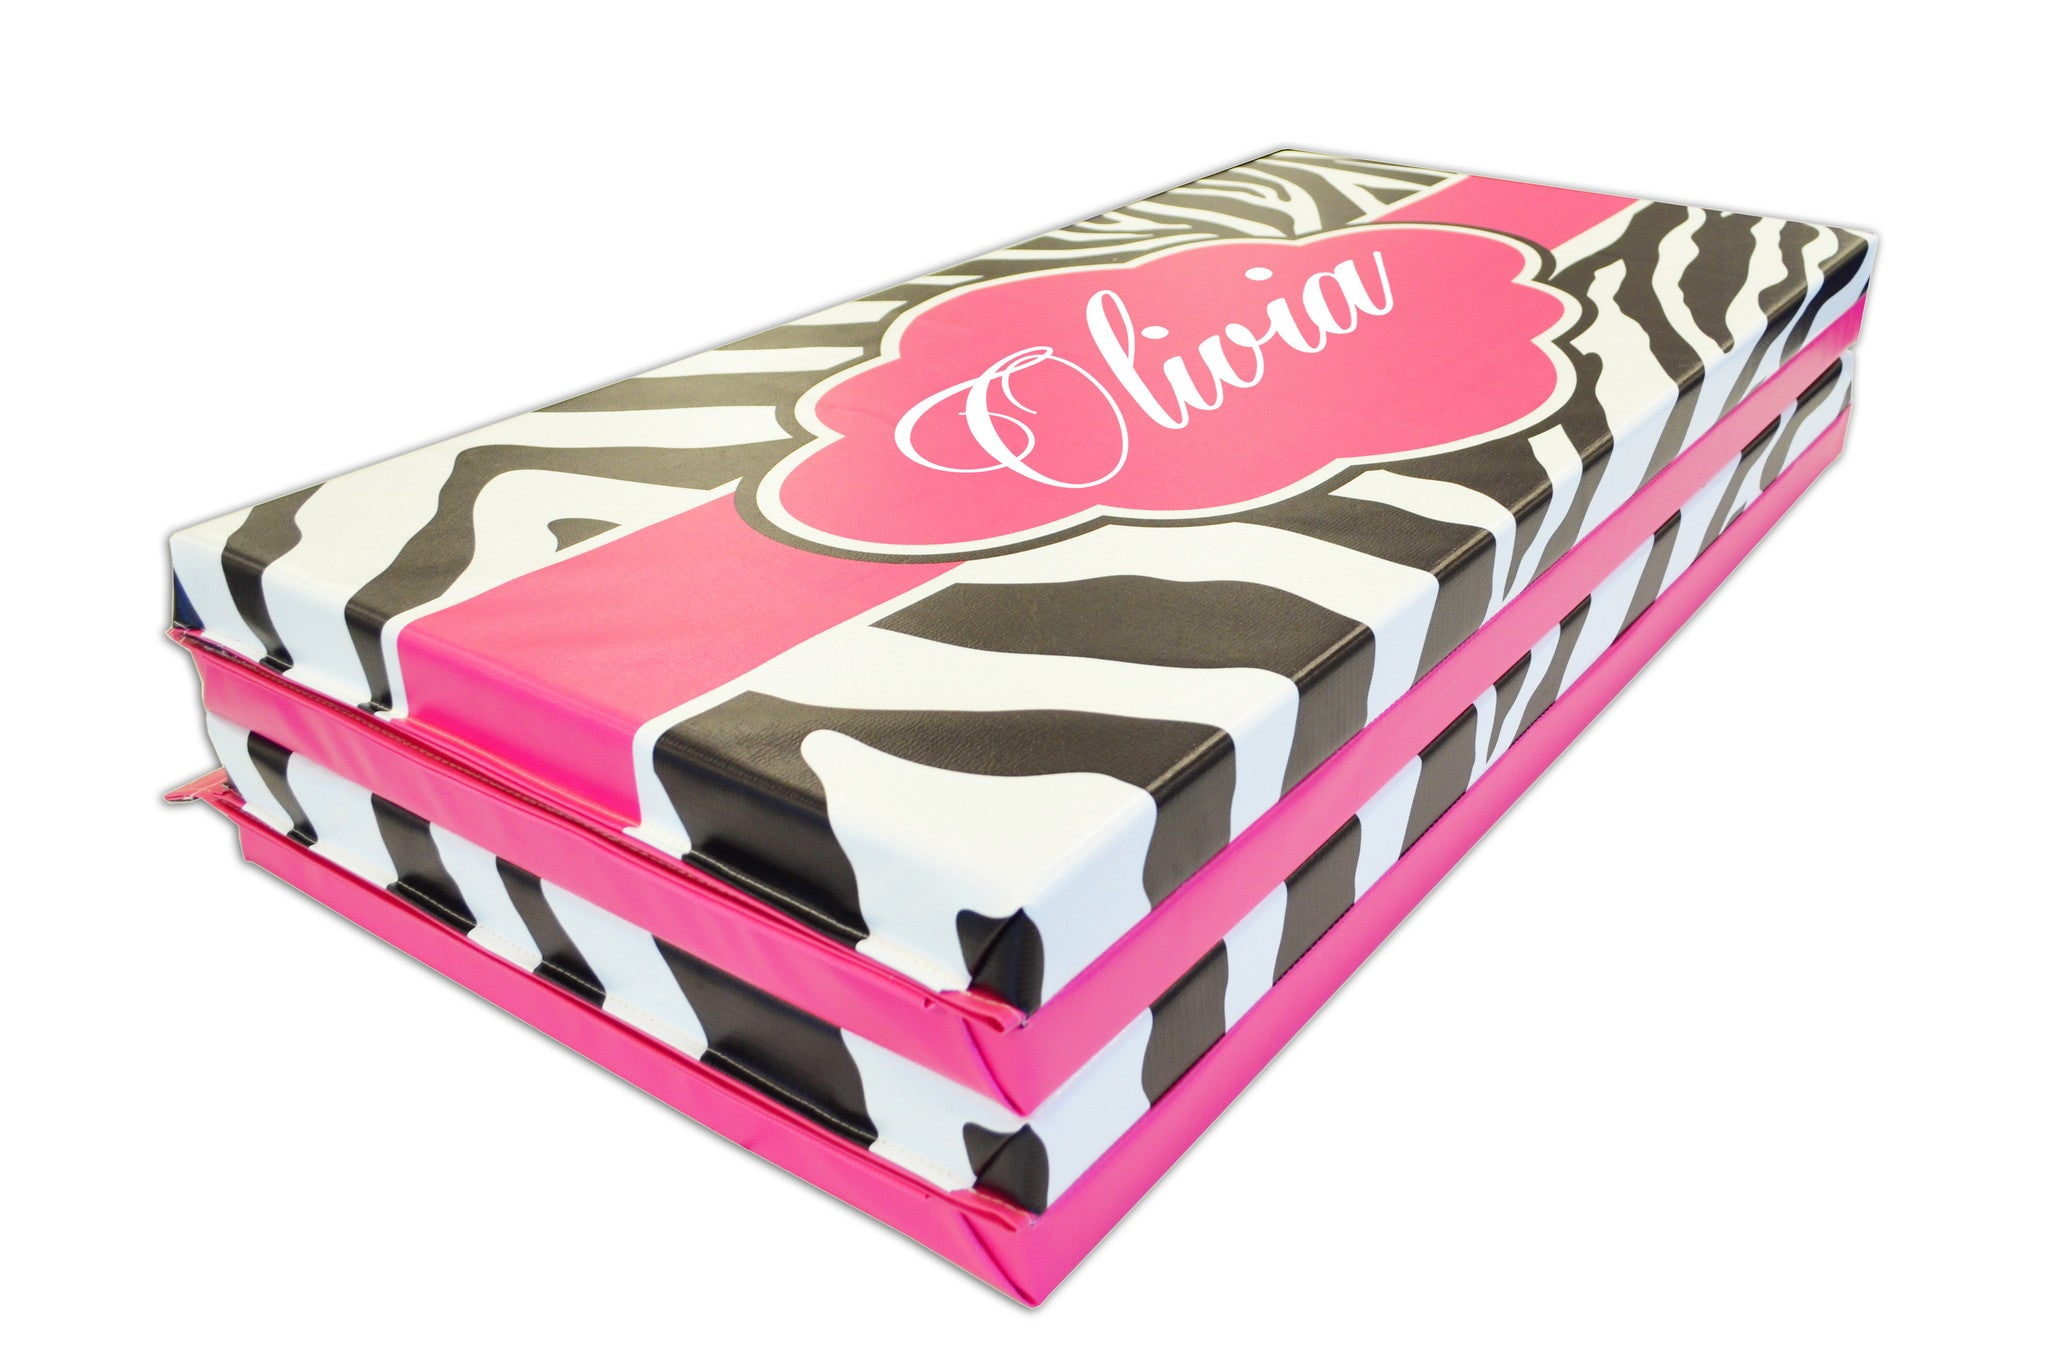 Buy together and Save! Pink Zebra Print Monogram 4' x 8' Mat and Folding Incline Mat